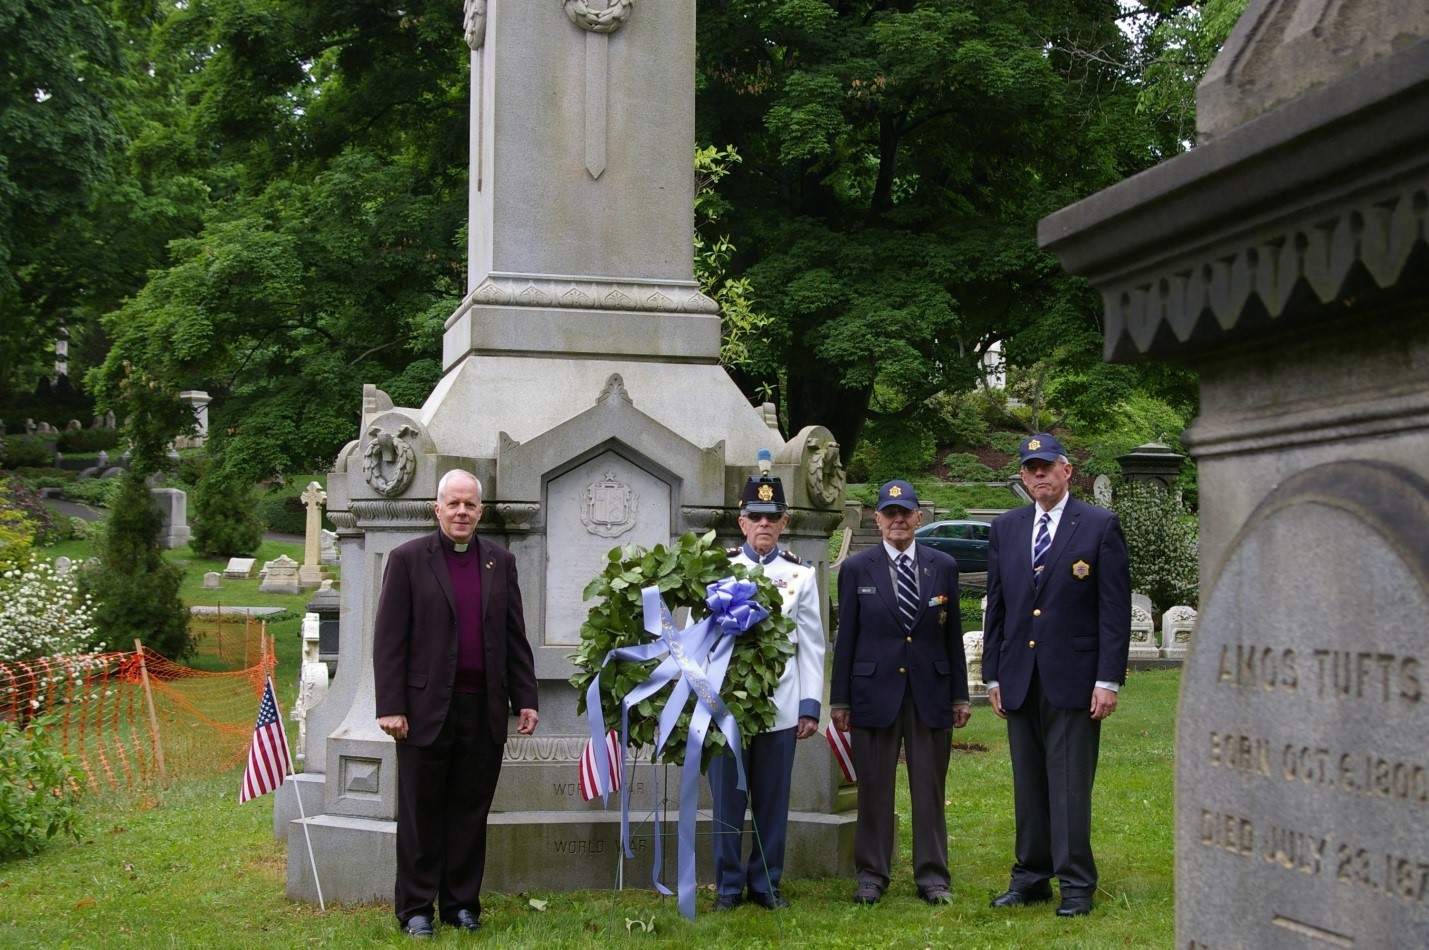 Chief Stedman, dressed in historic FCC dress uniform, assisted VAFCC senior member, Leonard Wolf, in laying the wreath.